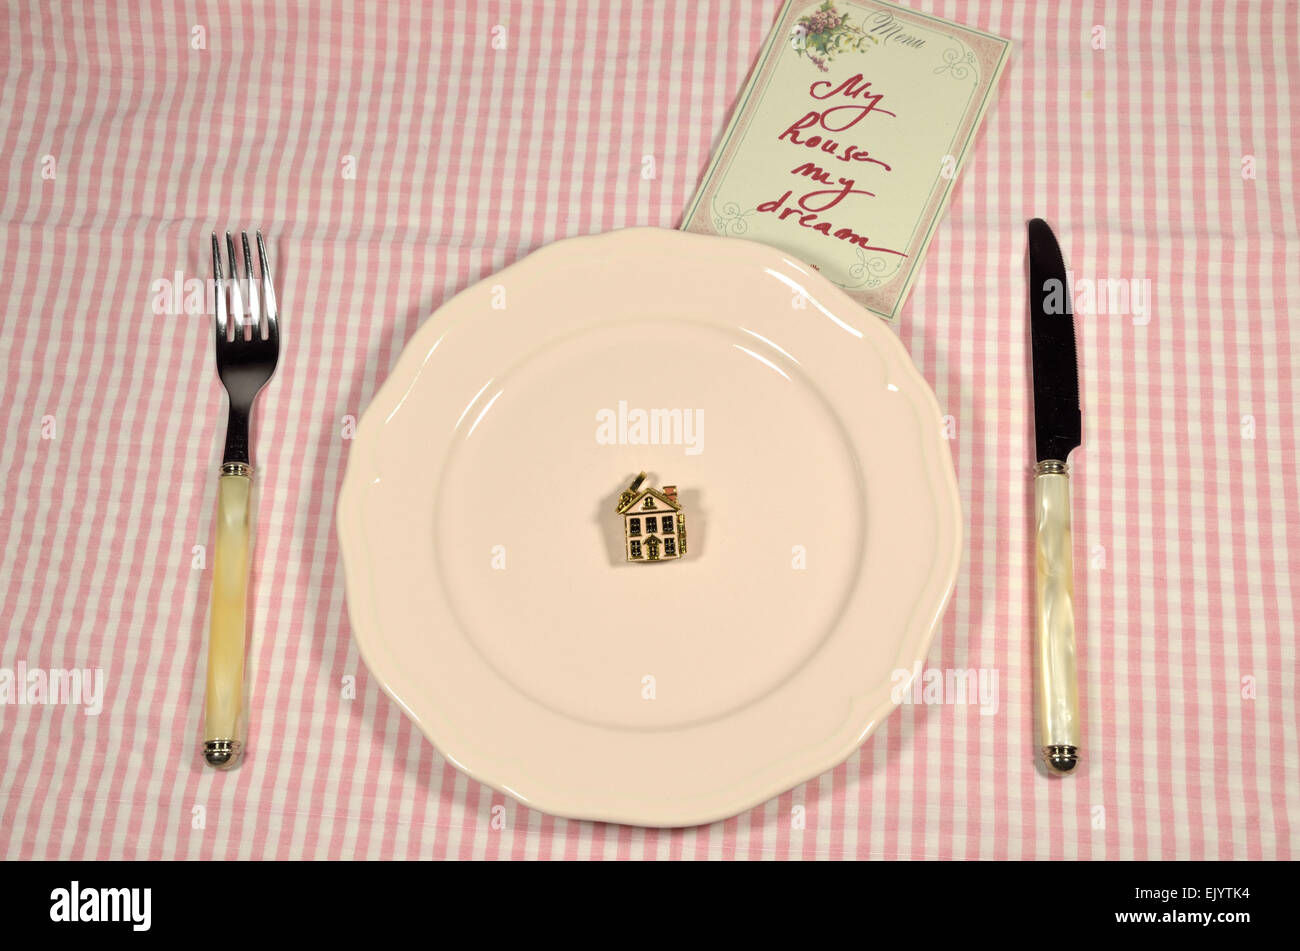 A small house served on a pink plate and a menu card. Scene is imagined as an  investment plan. Stock Photo